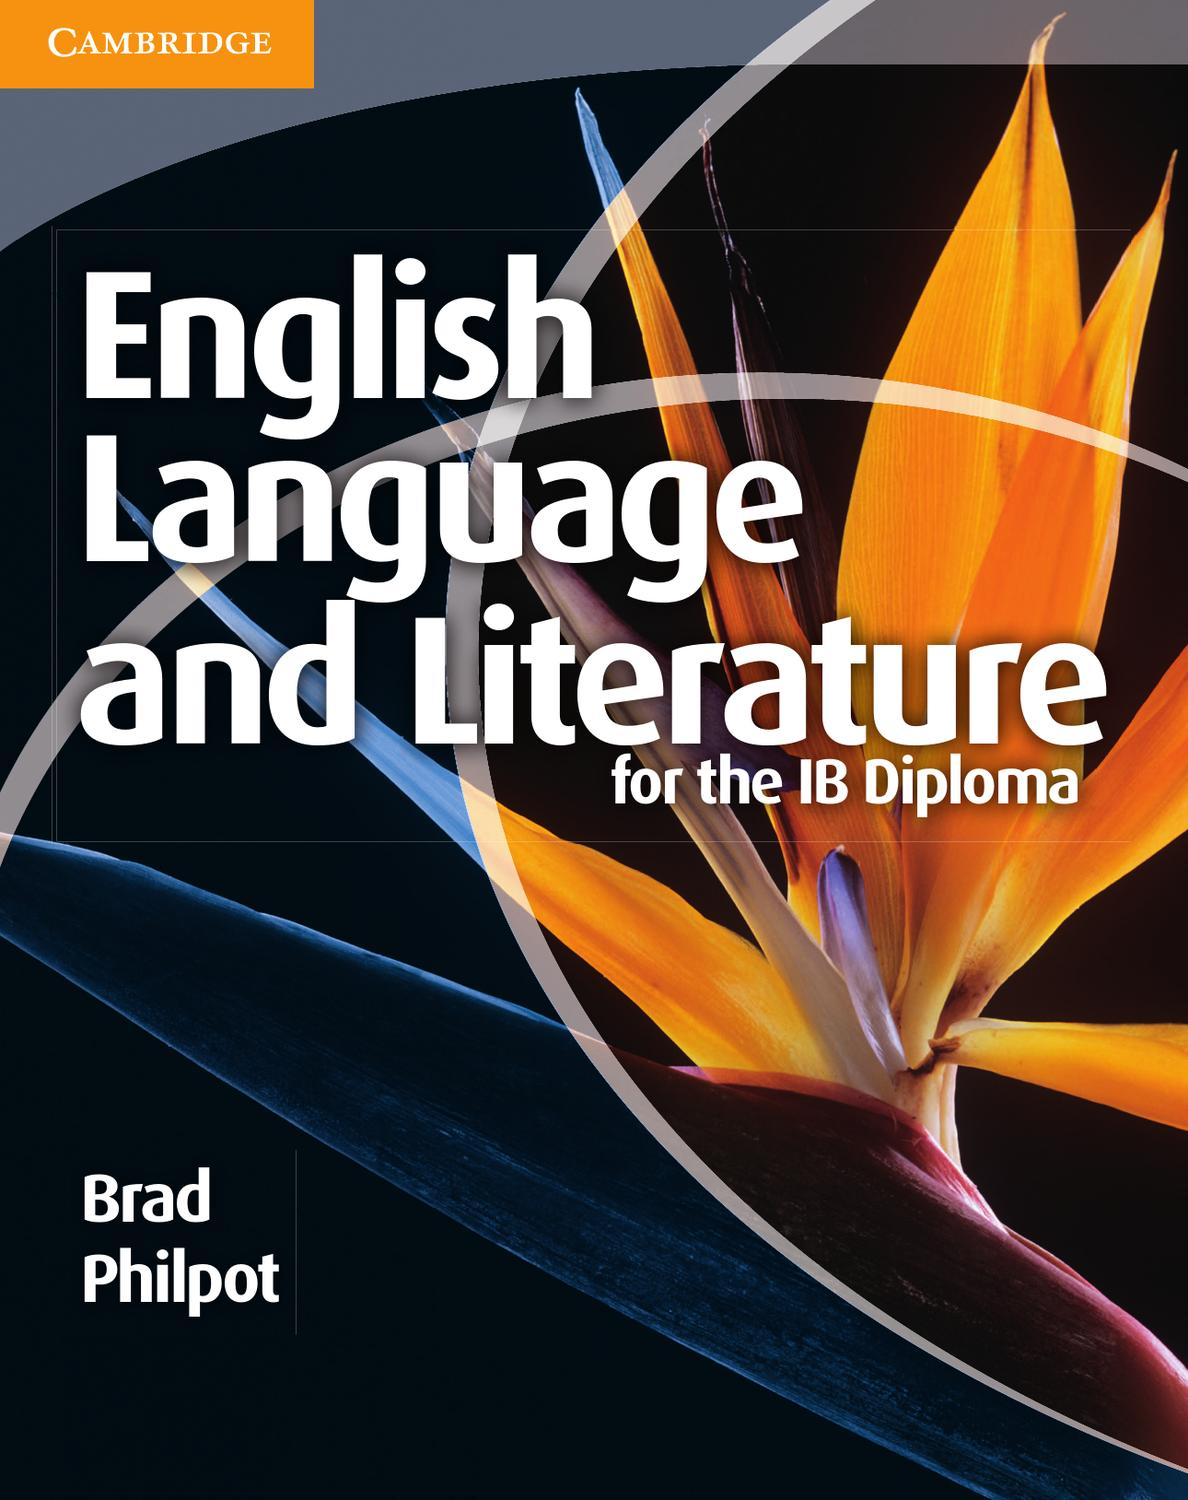 english language and literature for the ib diploma by cambridge  english language and literature for the ib diploma